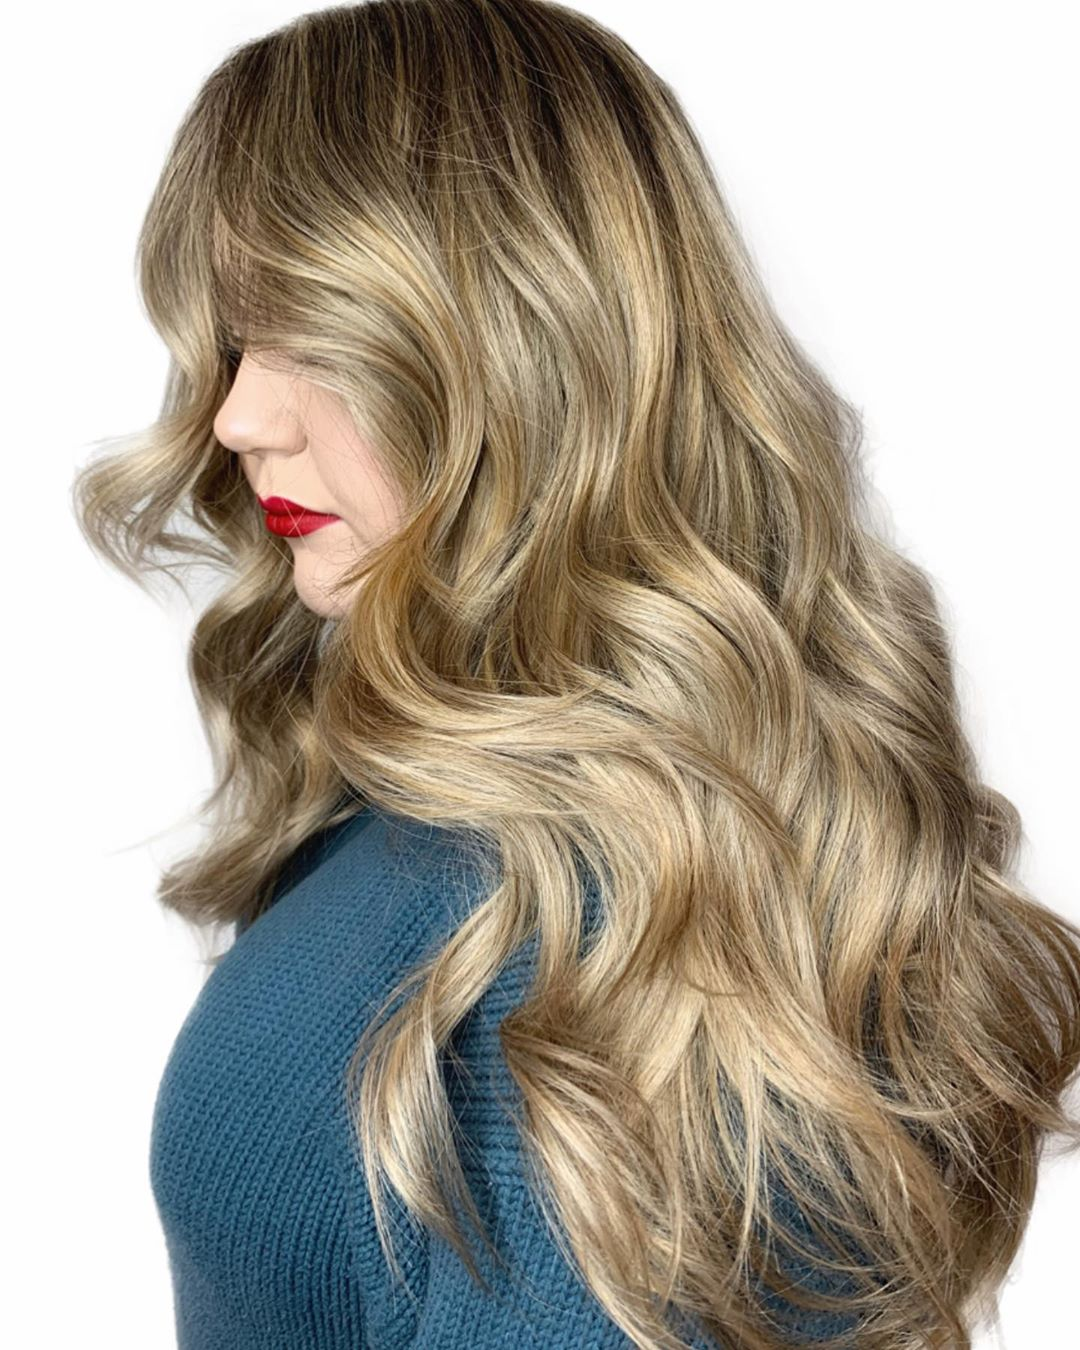 Heavy Metallic Blonde Balayage Highlights